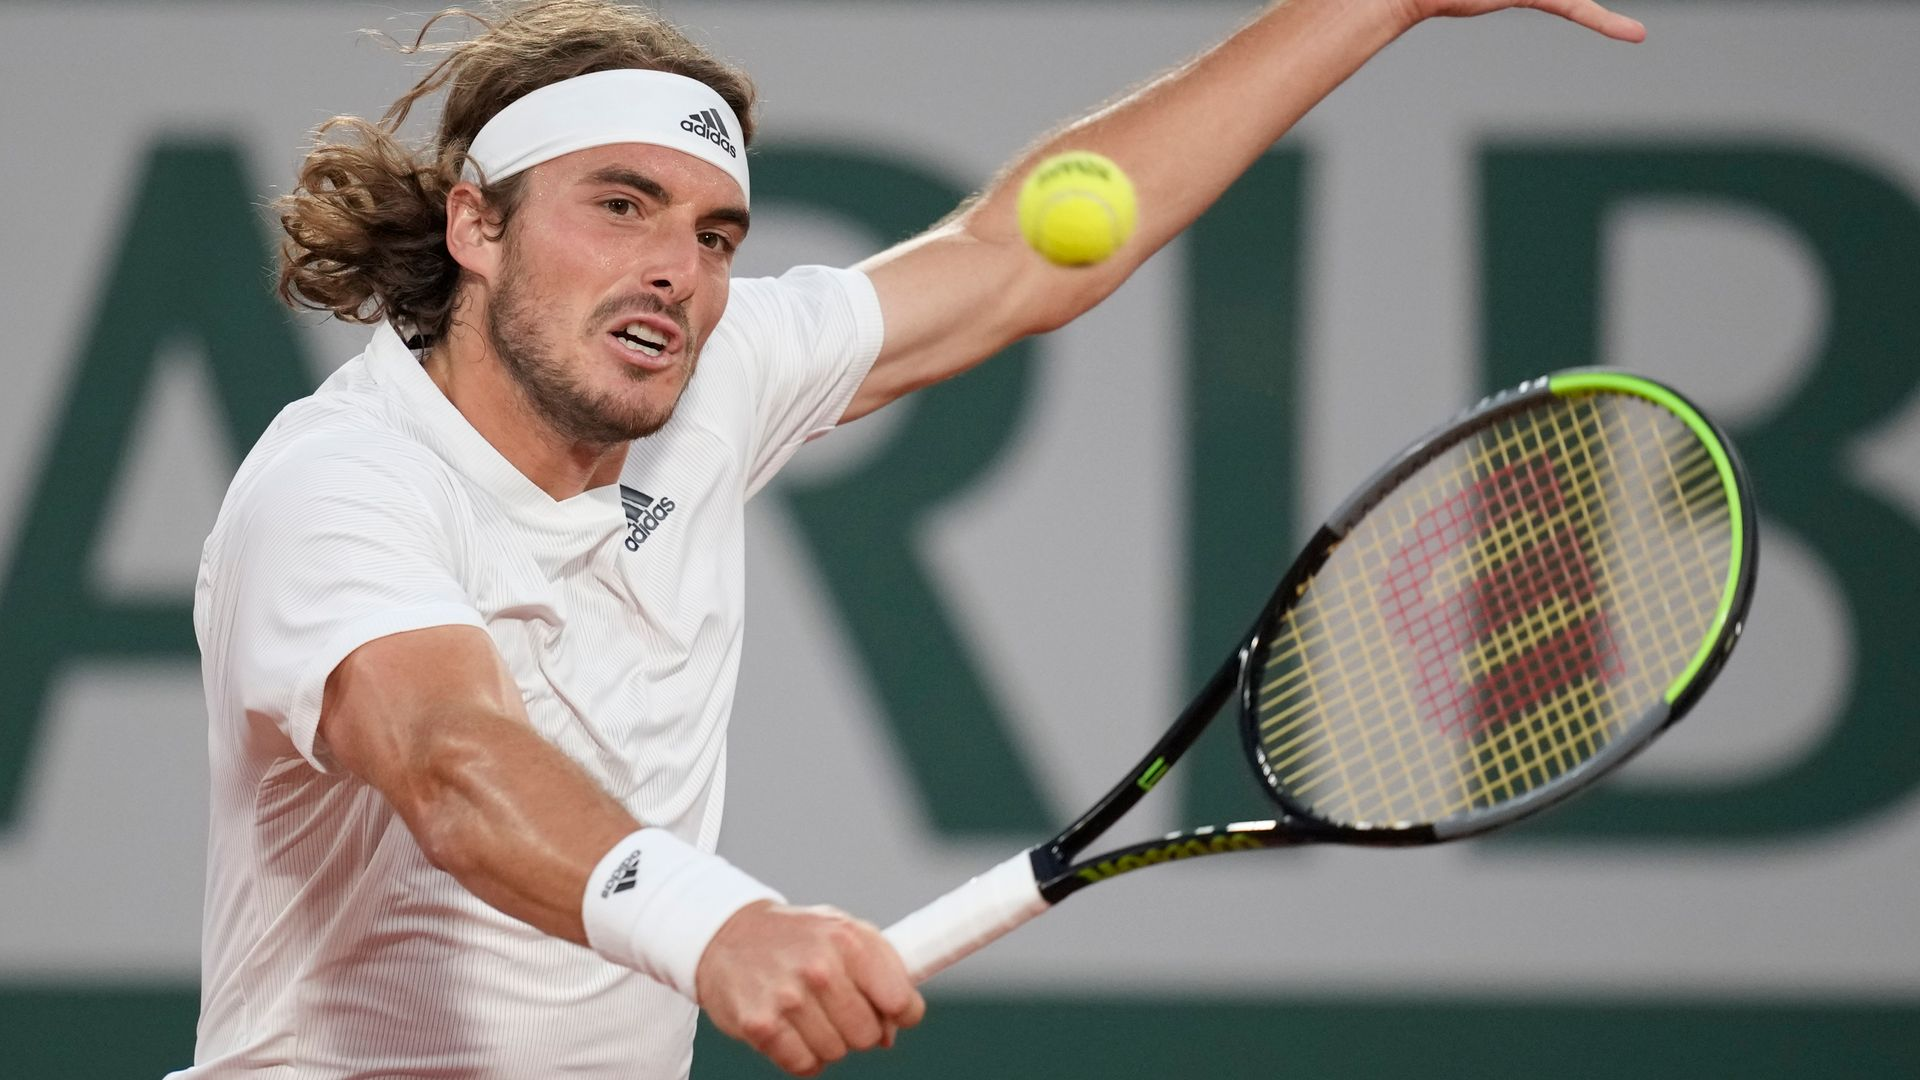 French Open: Latest scores